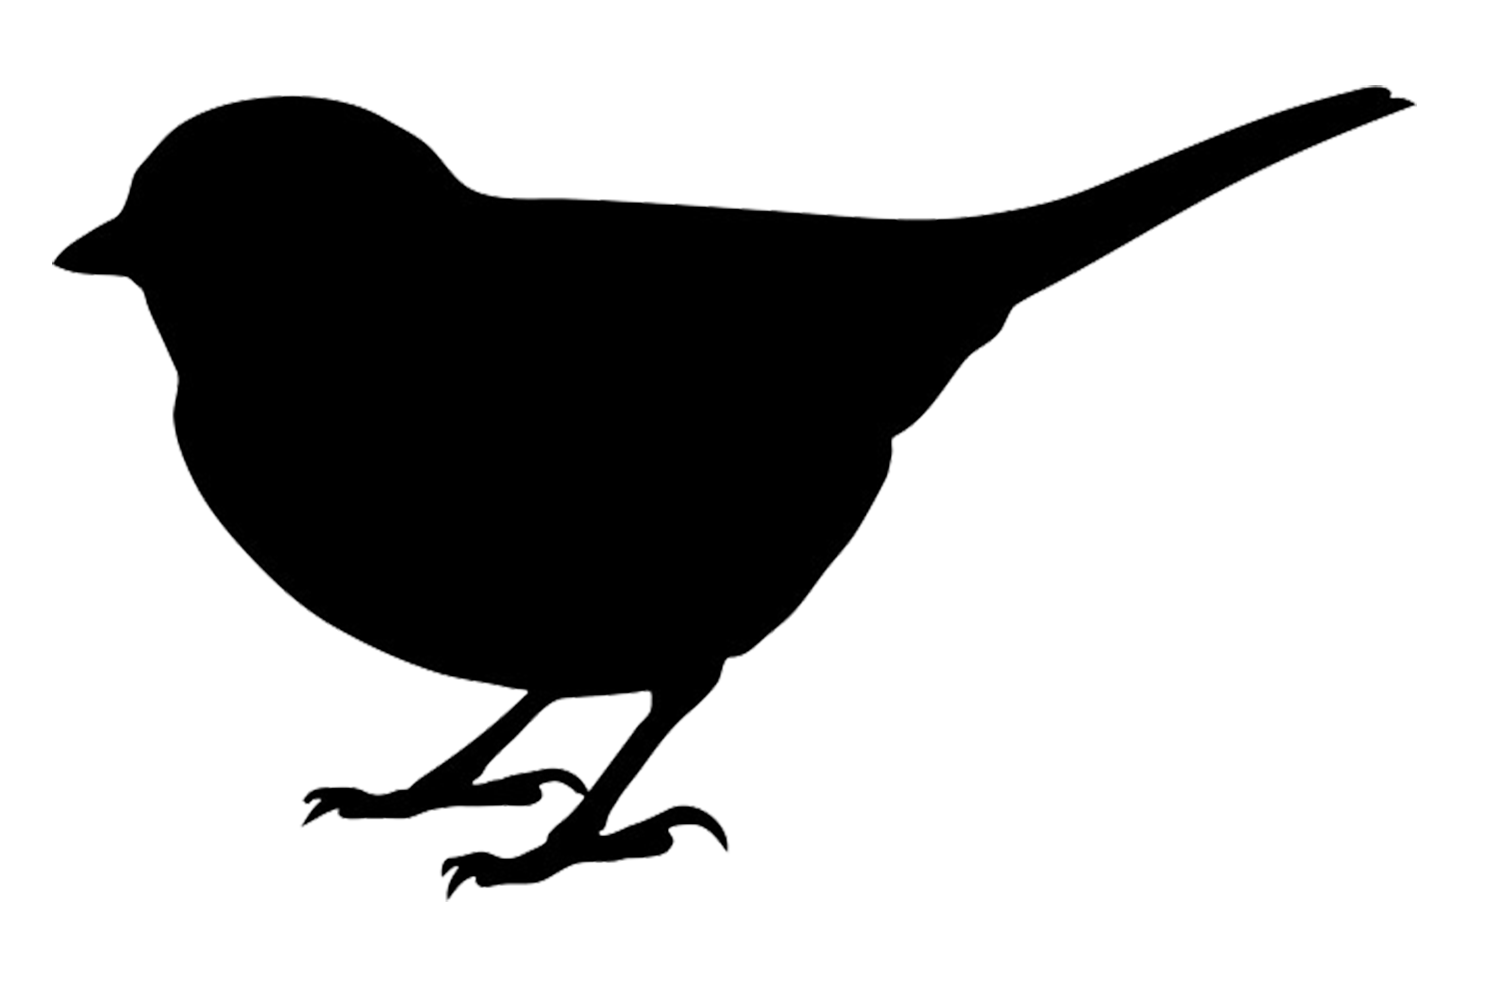 small bird black silhouette